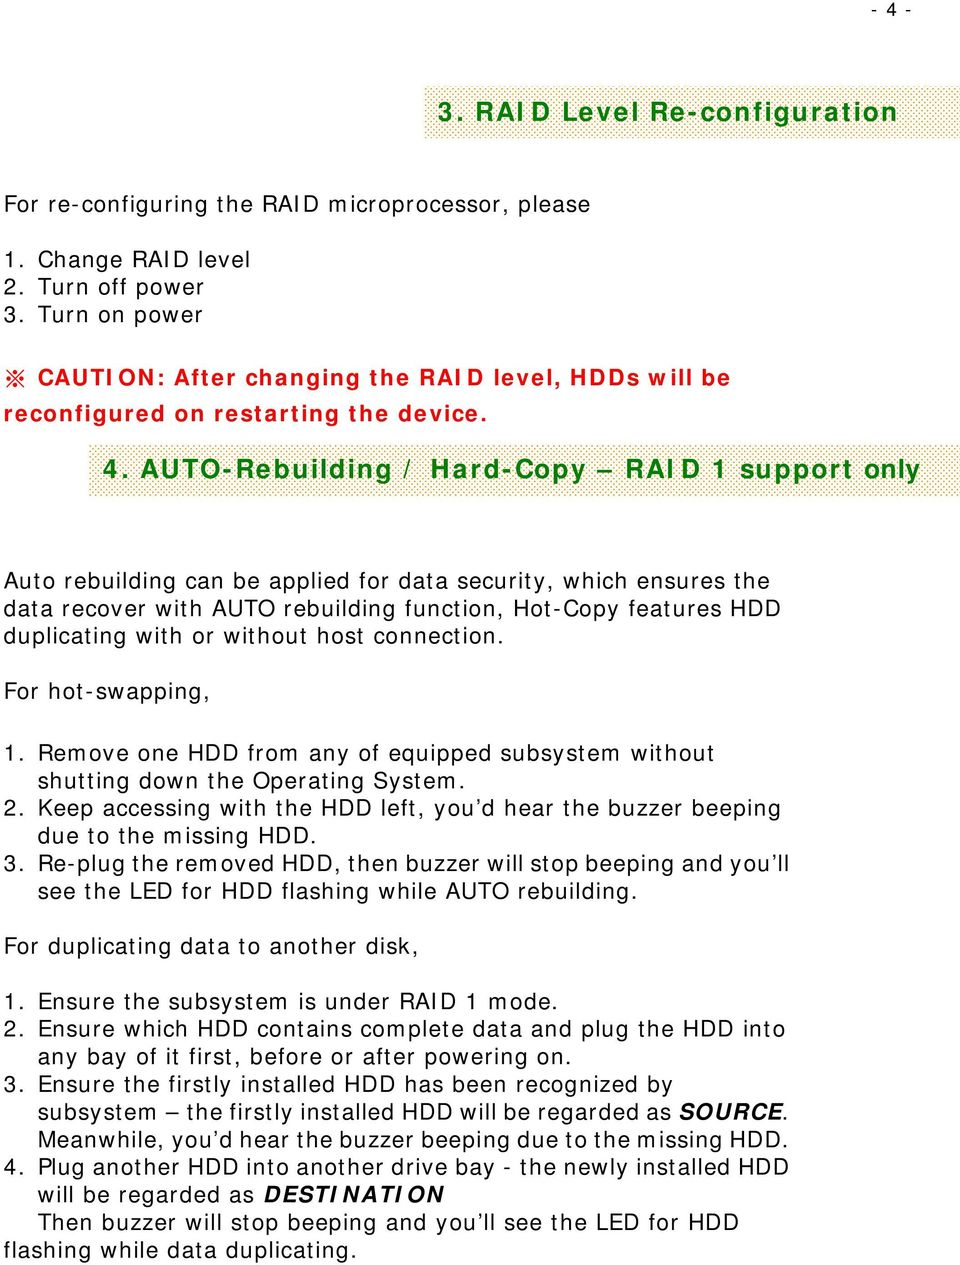 AUTO-Rebuilding / Hard-Copy RAID 1 support only Auto rebuilding can be applied for data security, which ensures the data recover with AUTO rebuilding function, Hot-Copy features HDD duplicating with